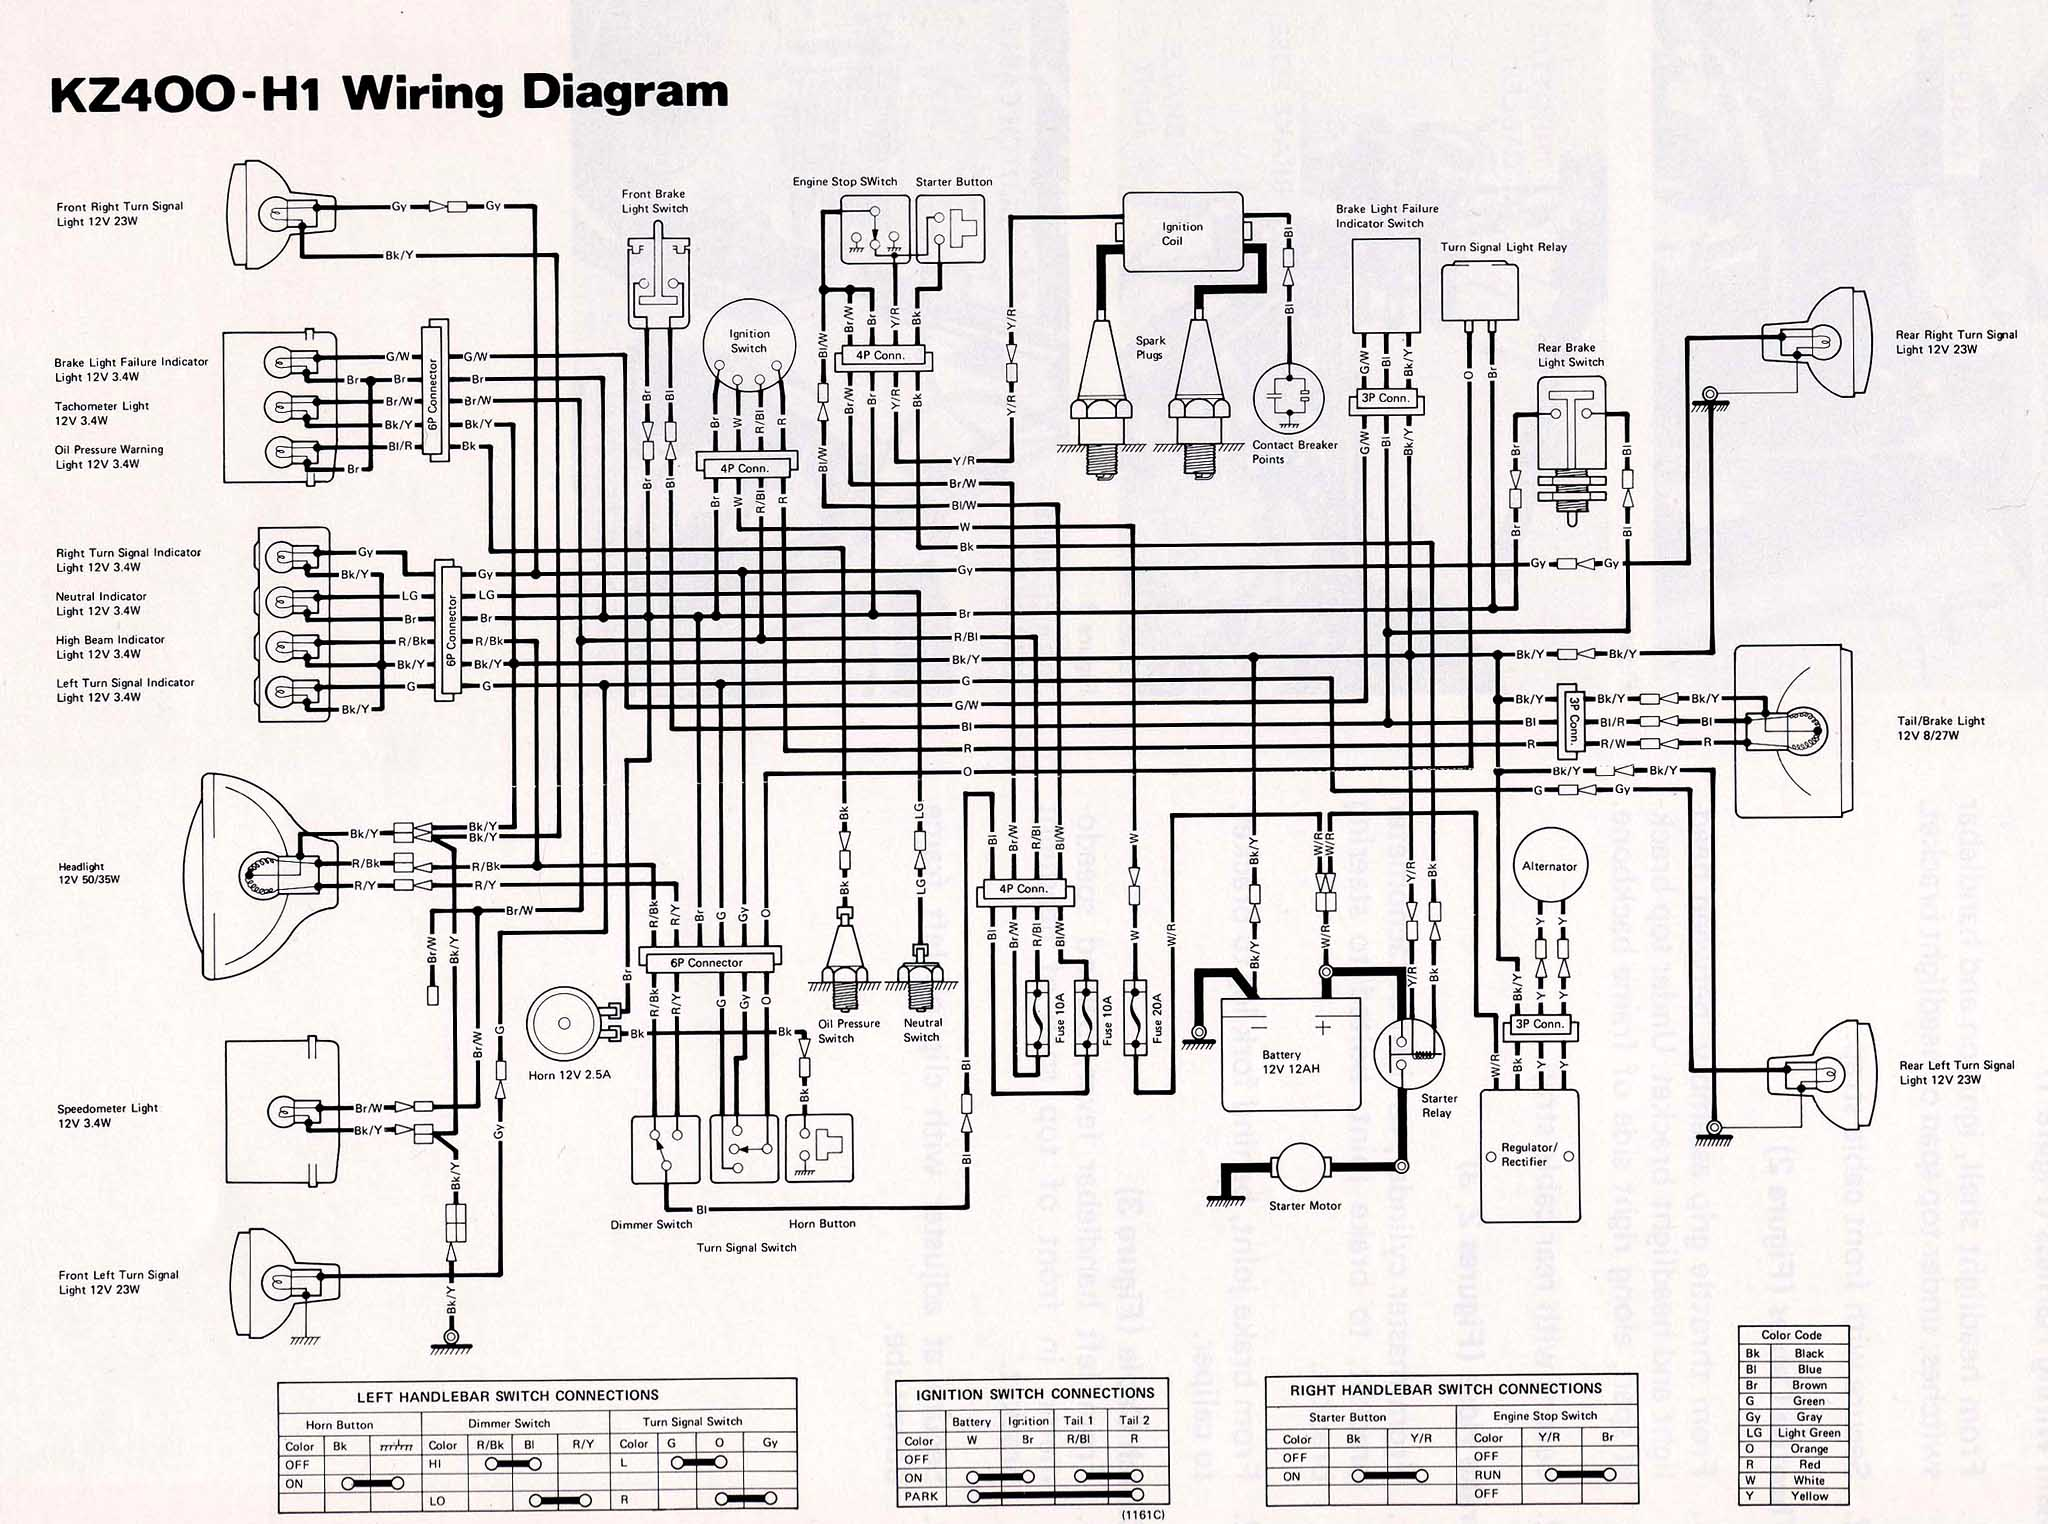 Rotation of KZ400 H1 LTD 22 index of techh tips bilder wiring diagrams 1981 kawasaki 440 ltd wiring diagram at n-0.co